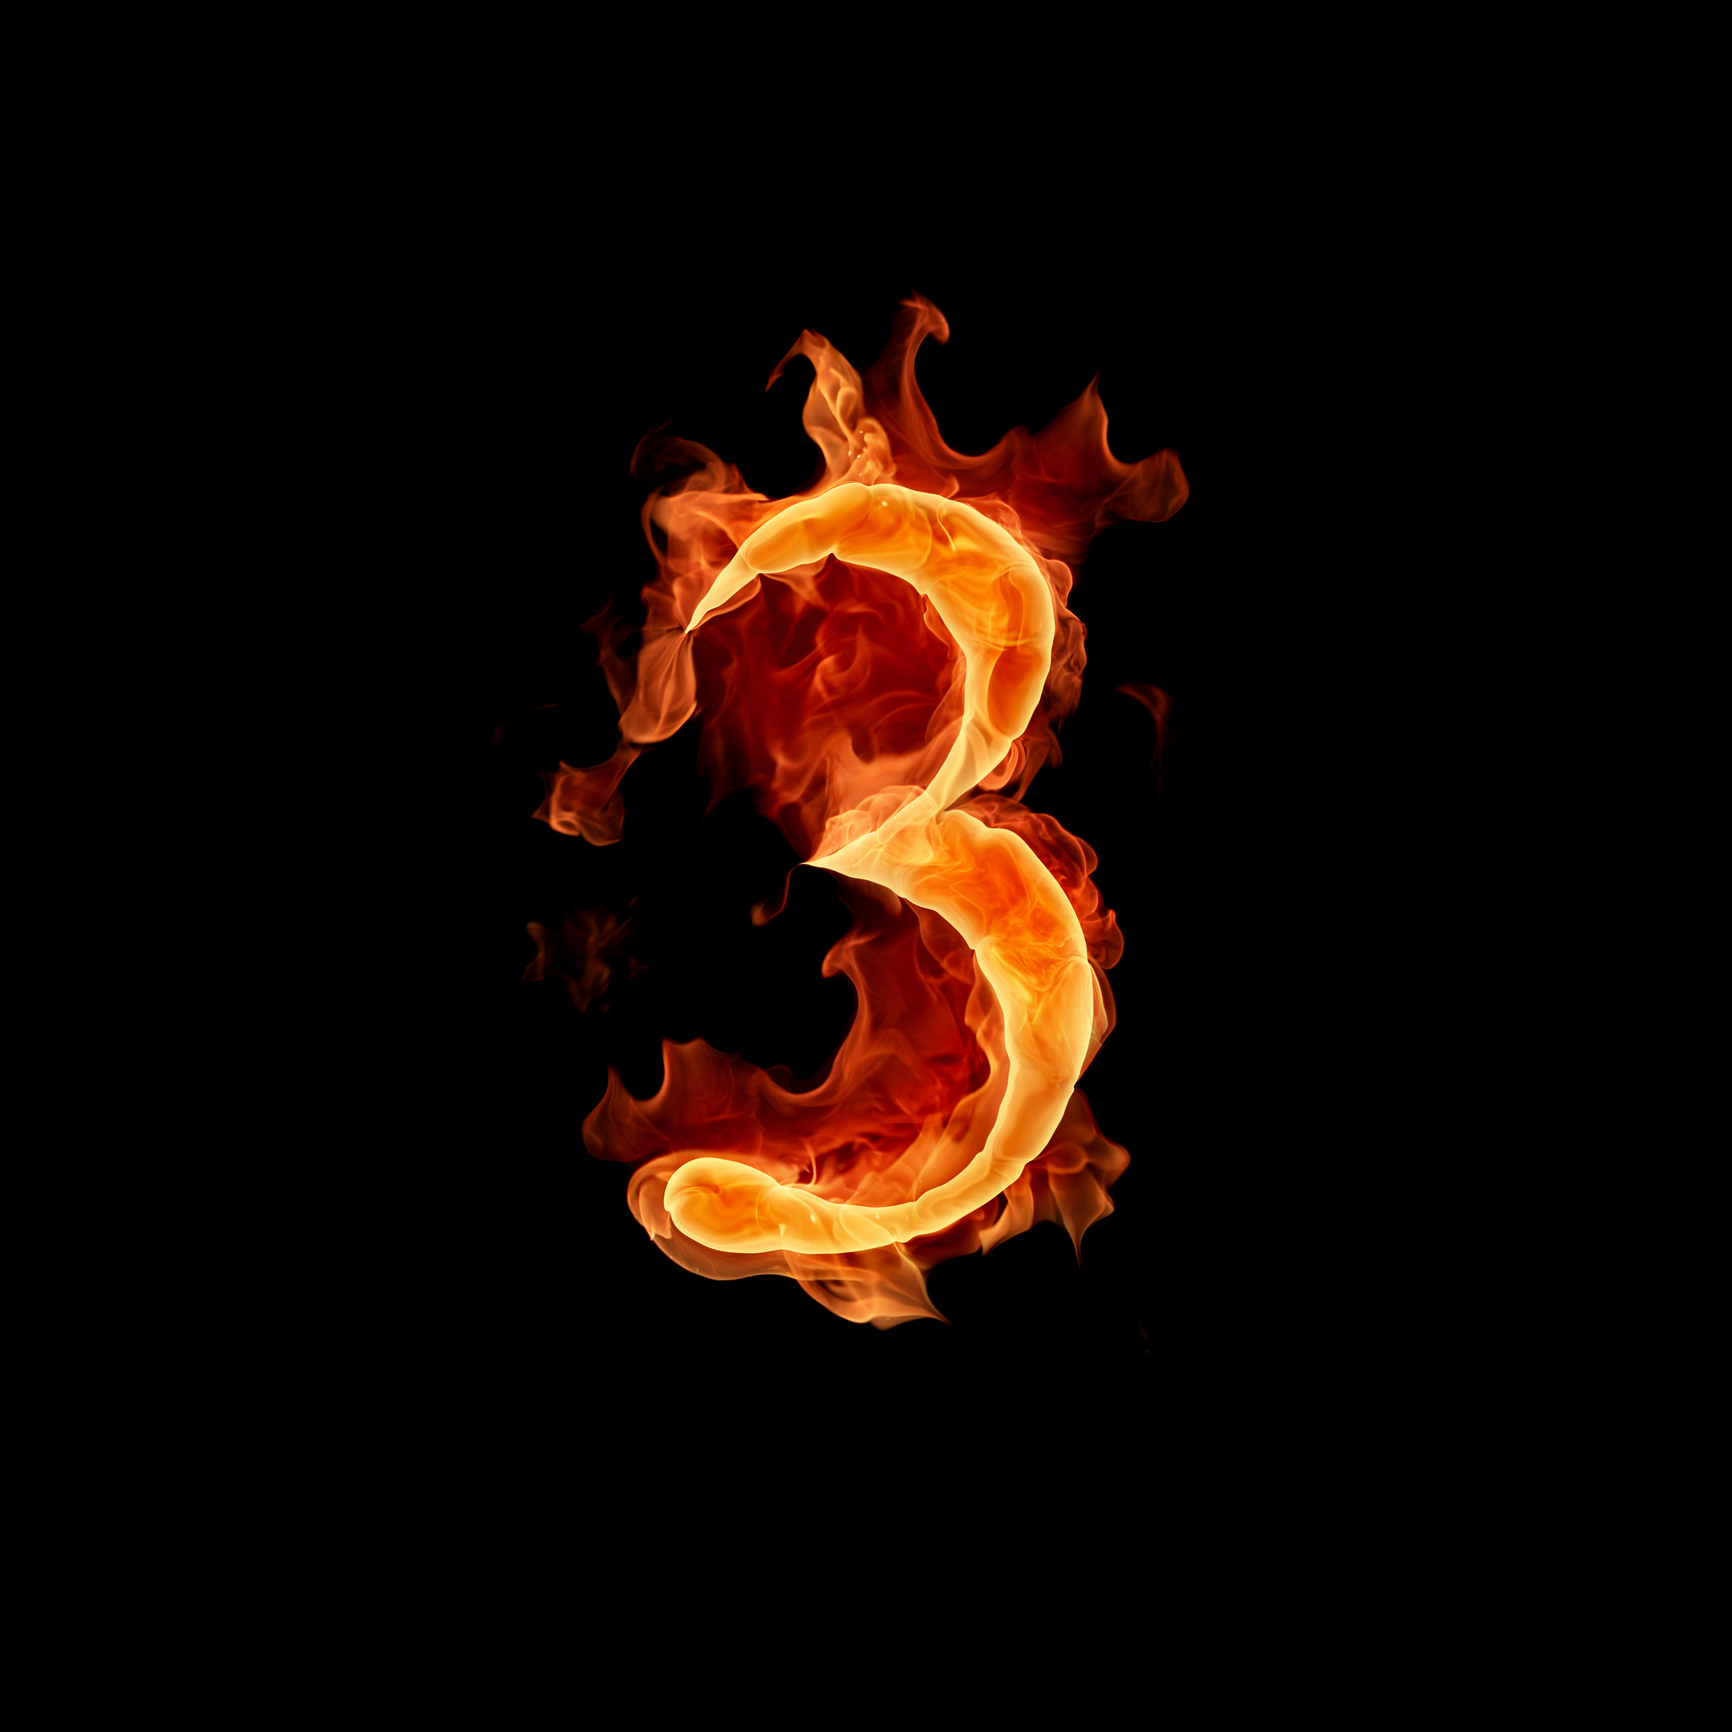 Numerology images The number 3 HD wallpaper and background ...